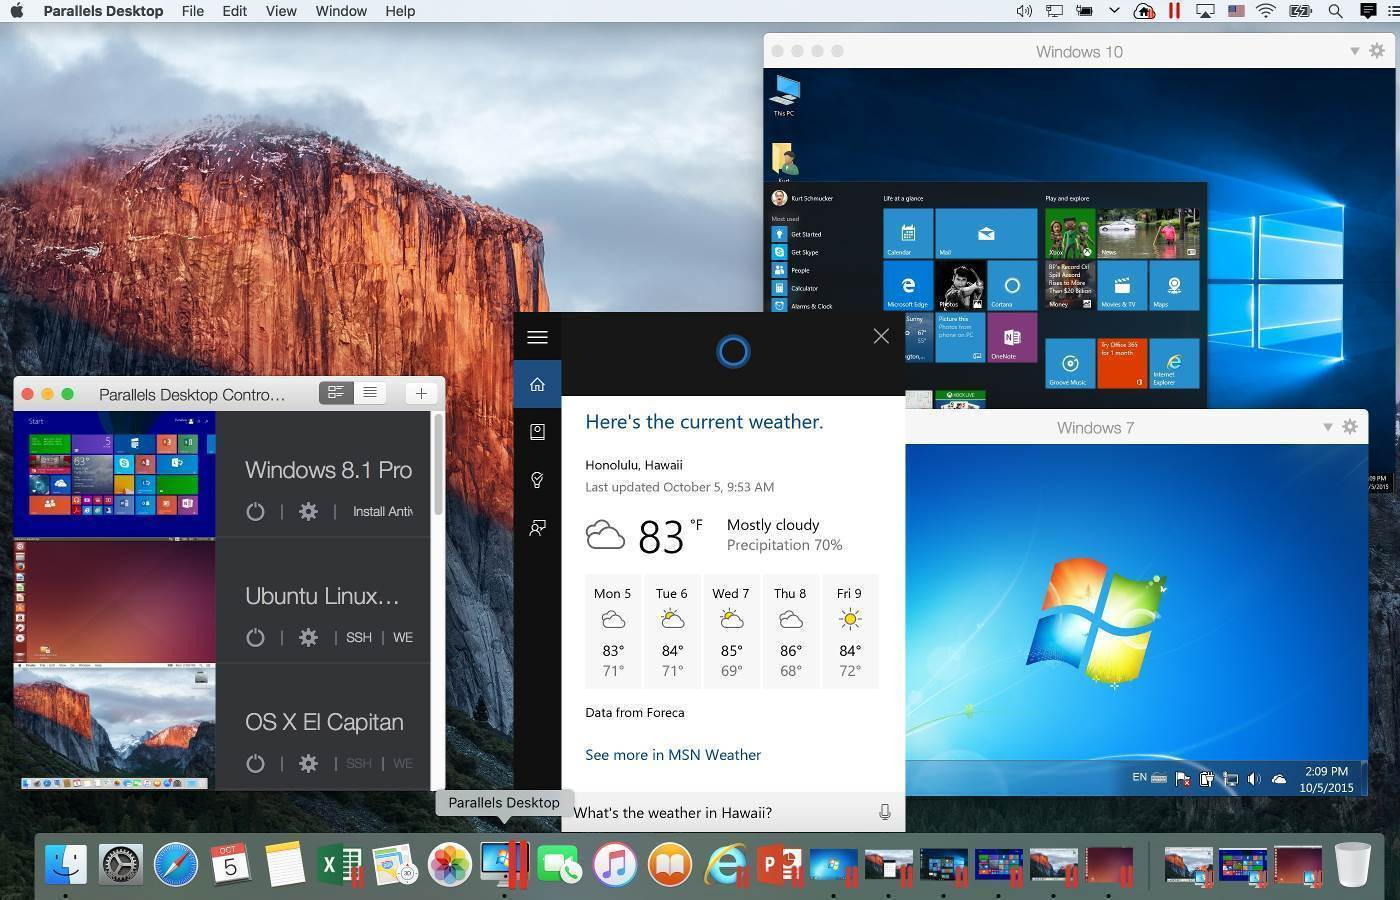 Parallels to be acquired by CorelDraw maker - Software - CRN